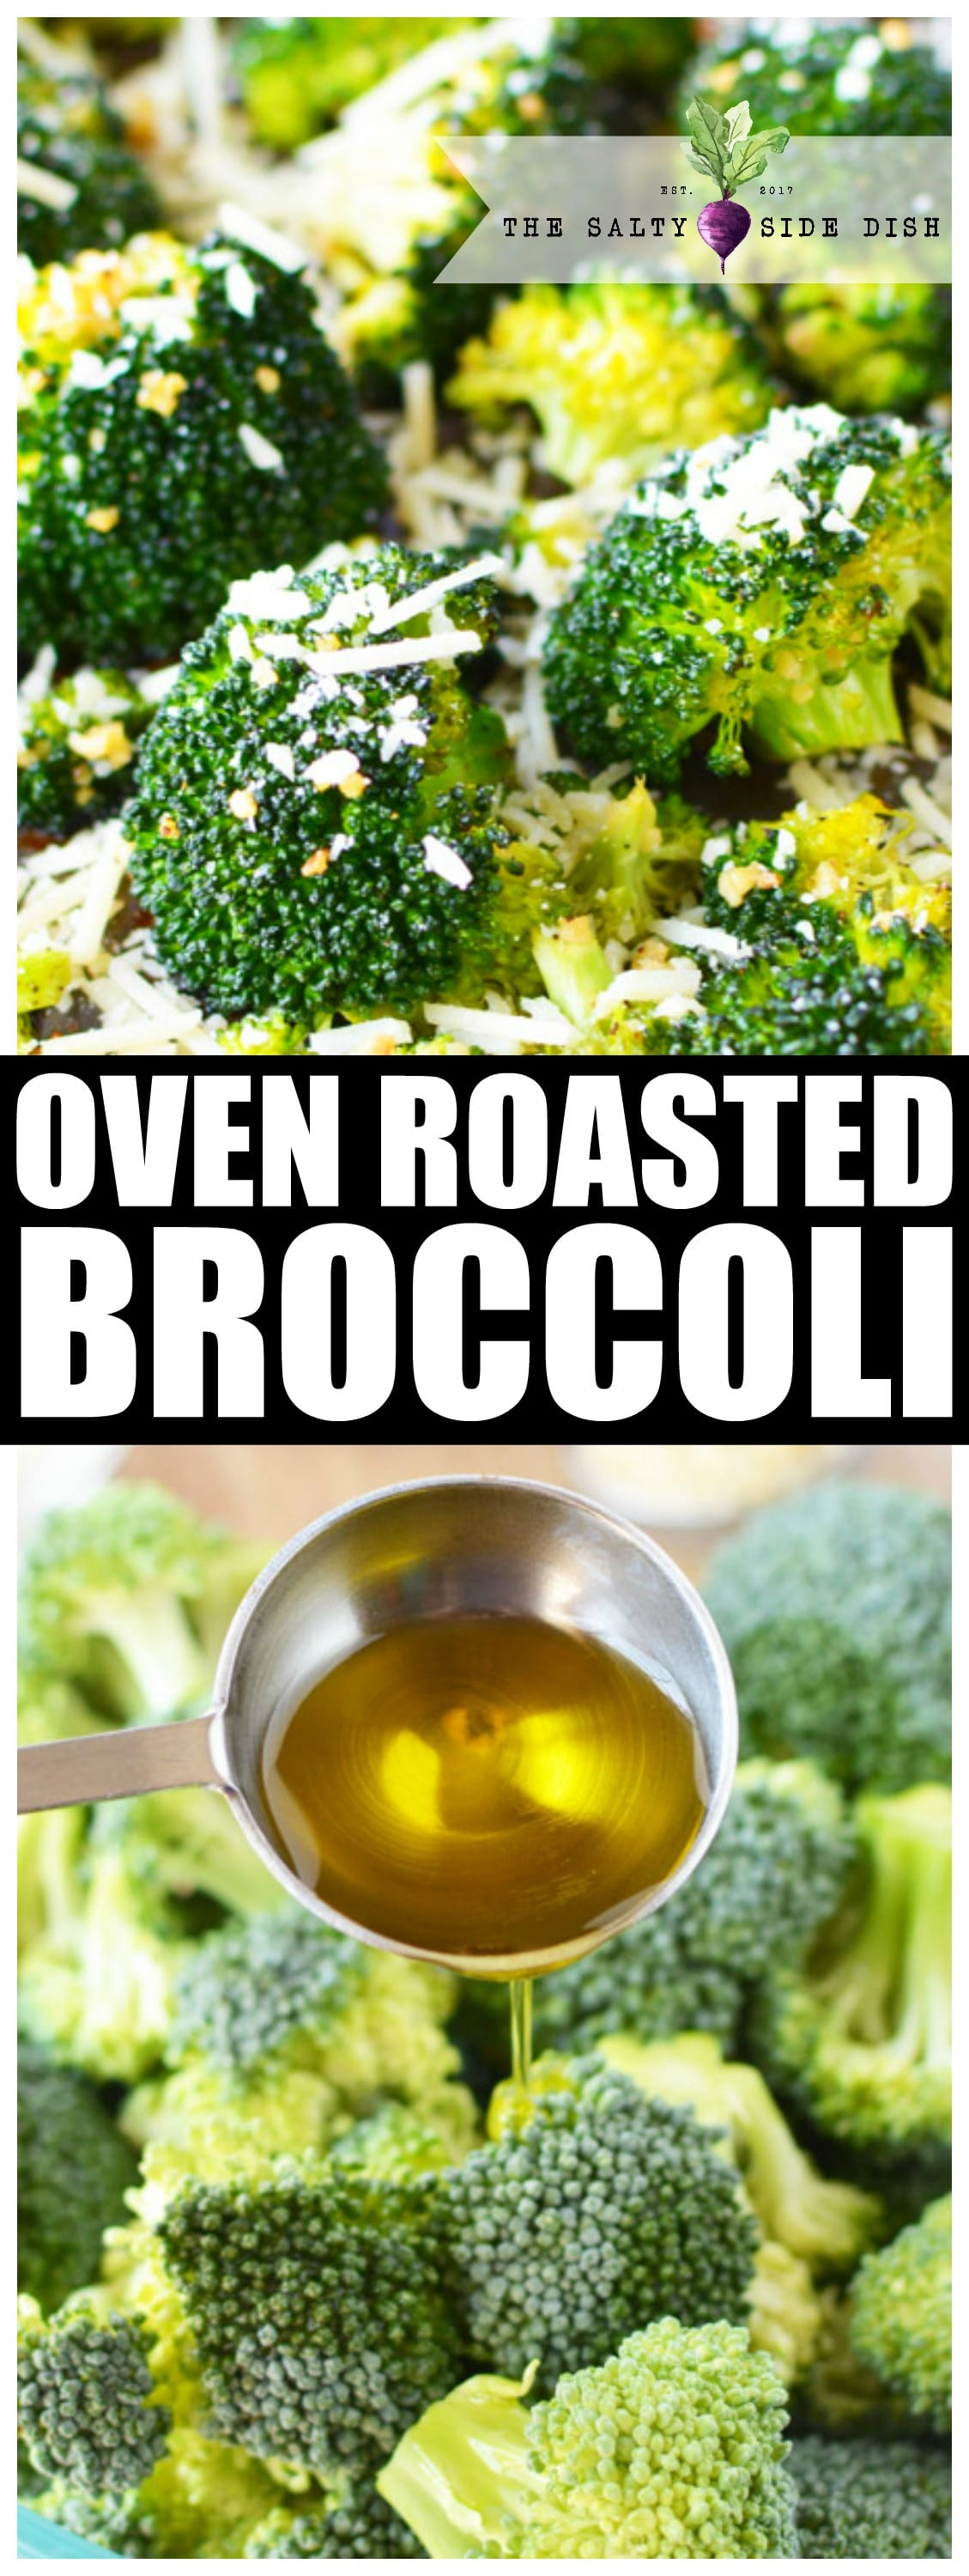 Oven Roasted Broccoli with Garlic and Parmesan Recipe | How to Roast Broccoli | Side Dish #broccoli #vegetarian #vegetables #veganrecipes #sidedish #food #foodblogger #dinner #dinnerrecipes